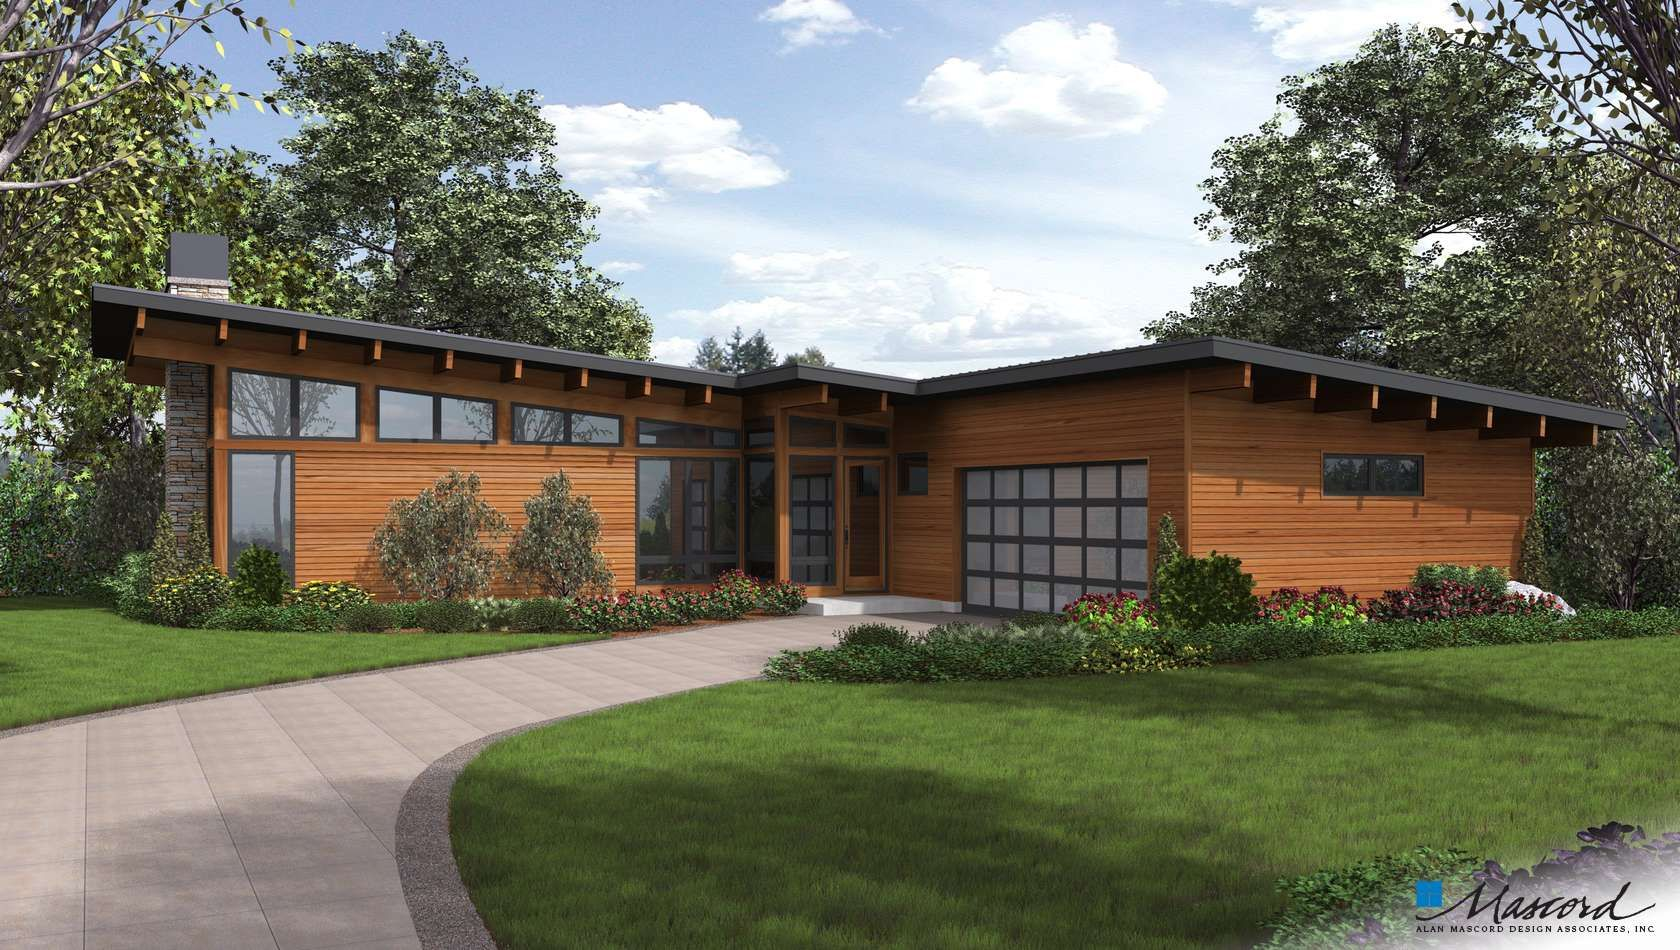 Contemporary House Plan 1256 The Delores 2110 Sqft 3 Beds 2 1 Baths Contemporary House Plans Architectural Design House Plans Backyard Pool